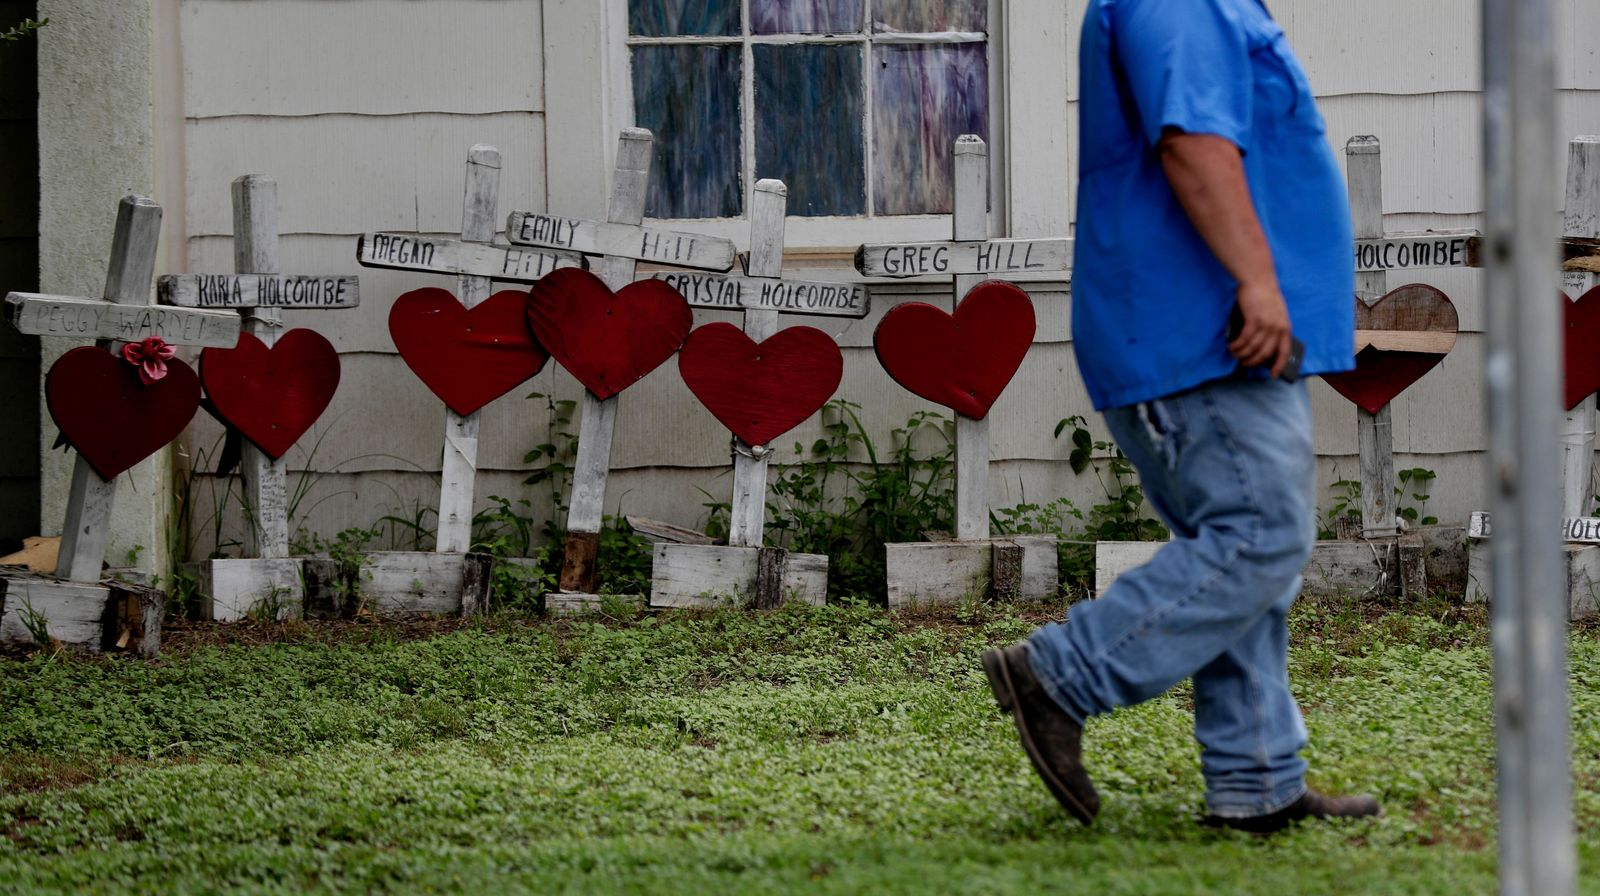 A man passes old memorial crosses on the side of a church building following a dedication ceremony for a new sanctuary and memorial room at the First Baptist Church in Sutherland Springs, Texas, Sunday, May 19, 2019. In 2017 a gunman opened fire at the church and killed more than two dozen congregants. (AP Photo/Eric Gay)